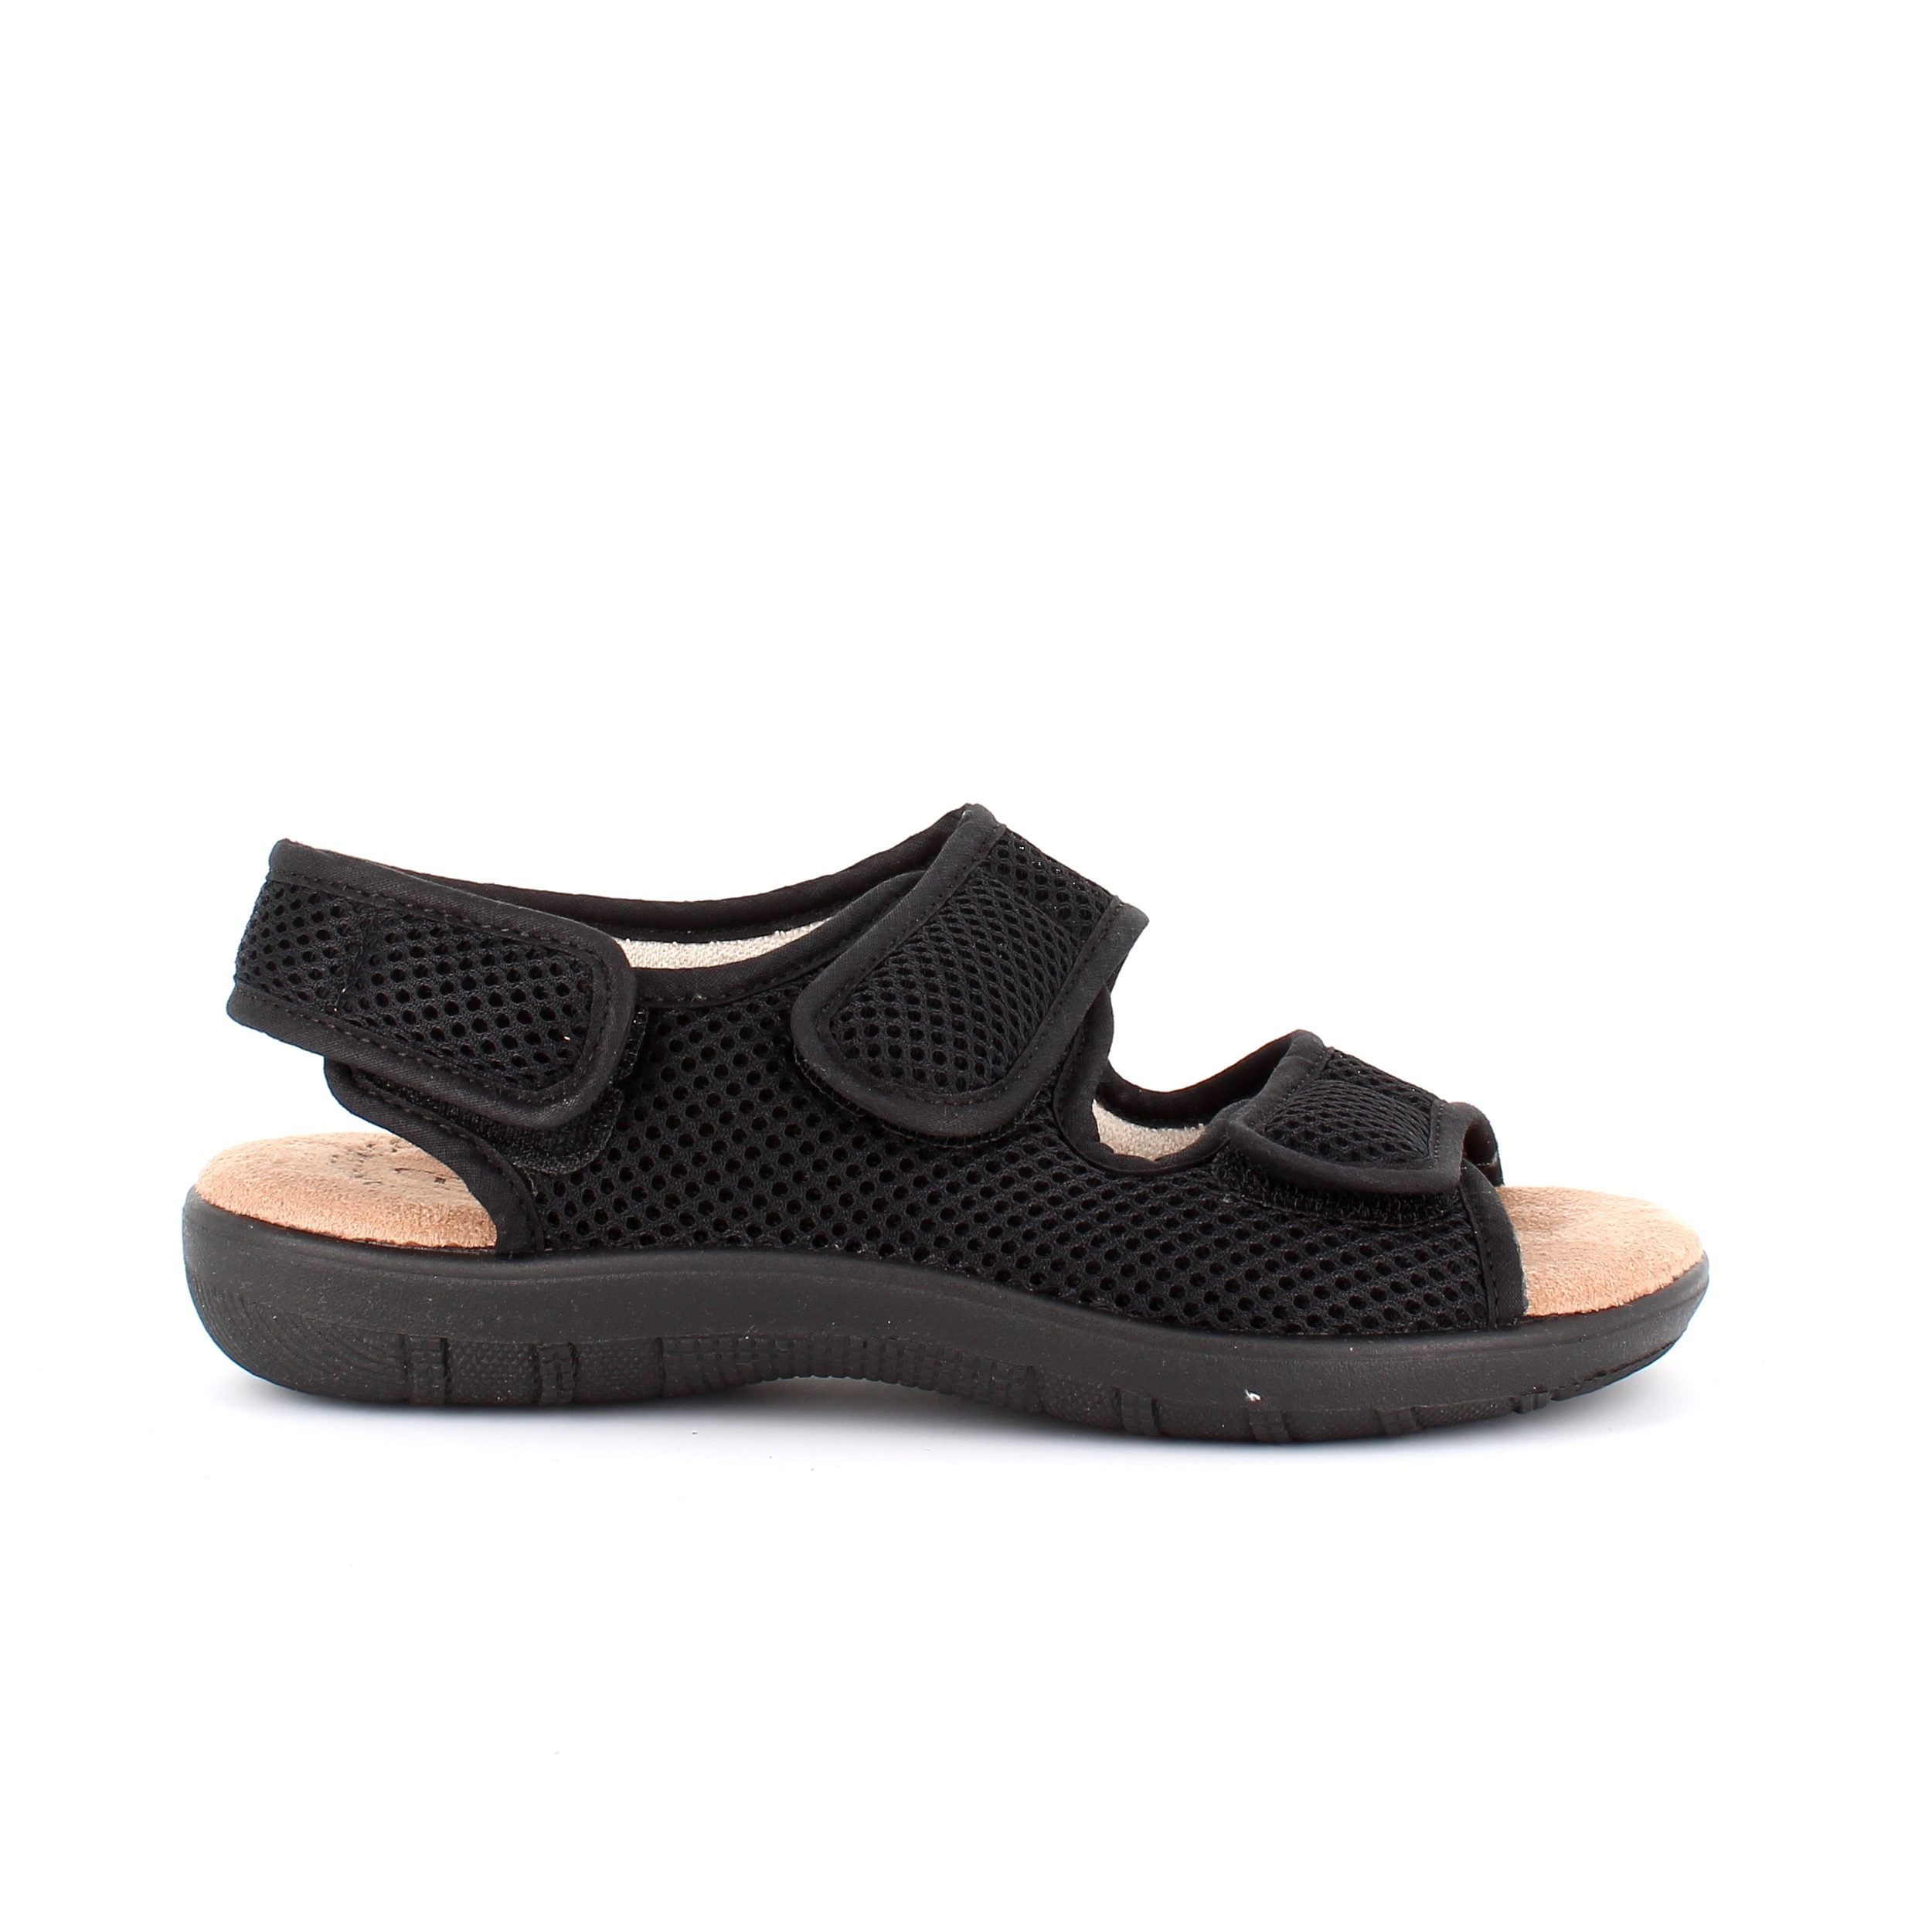 Image of   Anatomisk soft sandal - 39